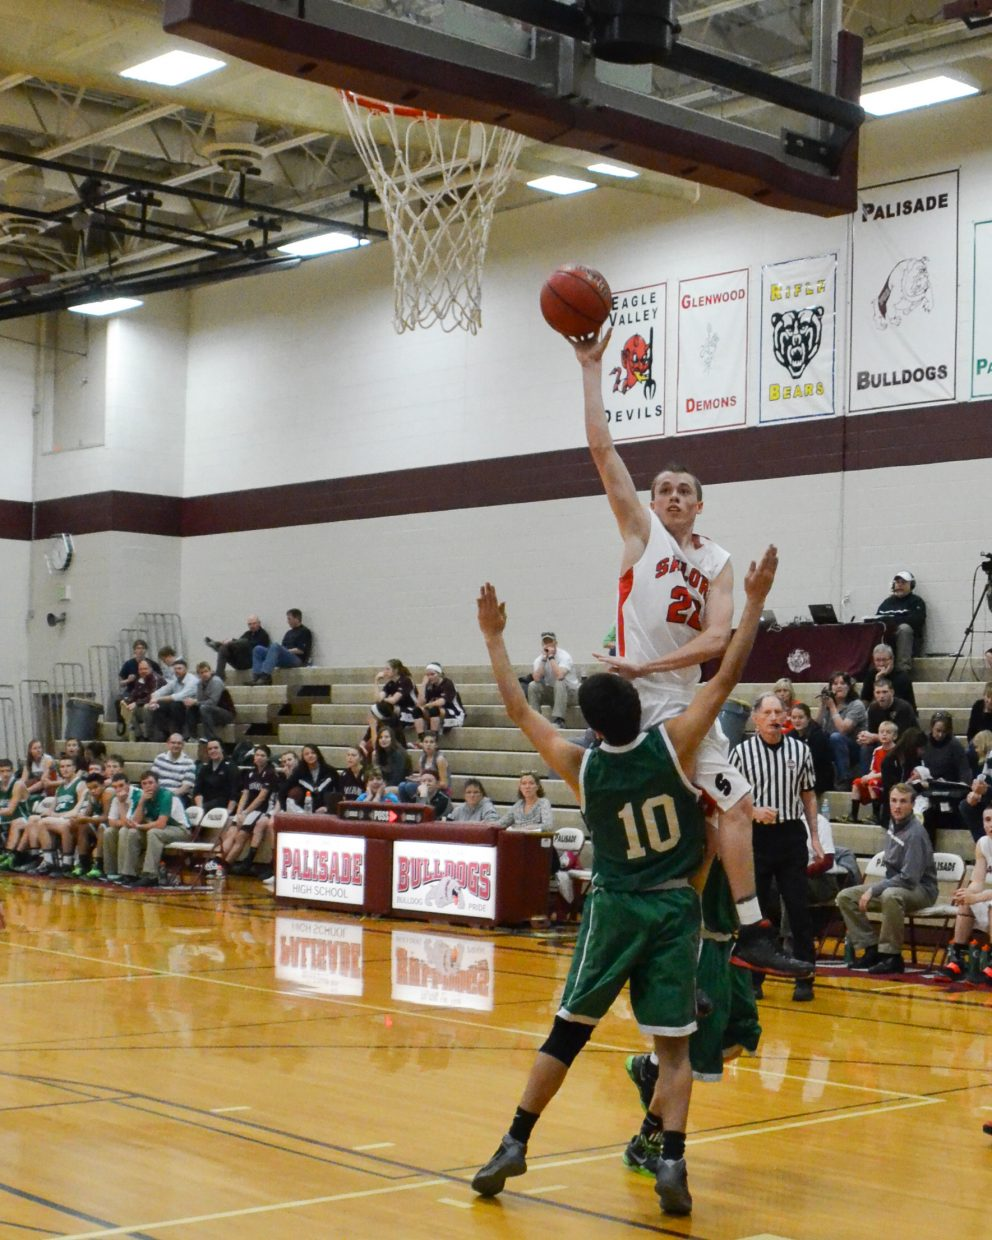 Brody King drives for a layup during Steamboat Springs' game against Delta in the Western Slope tournament. Steamboat won, 45-27.